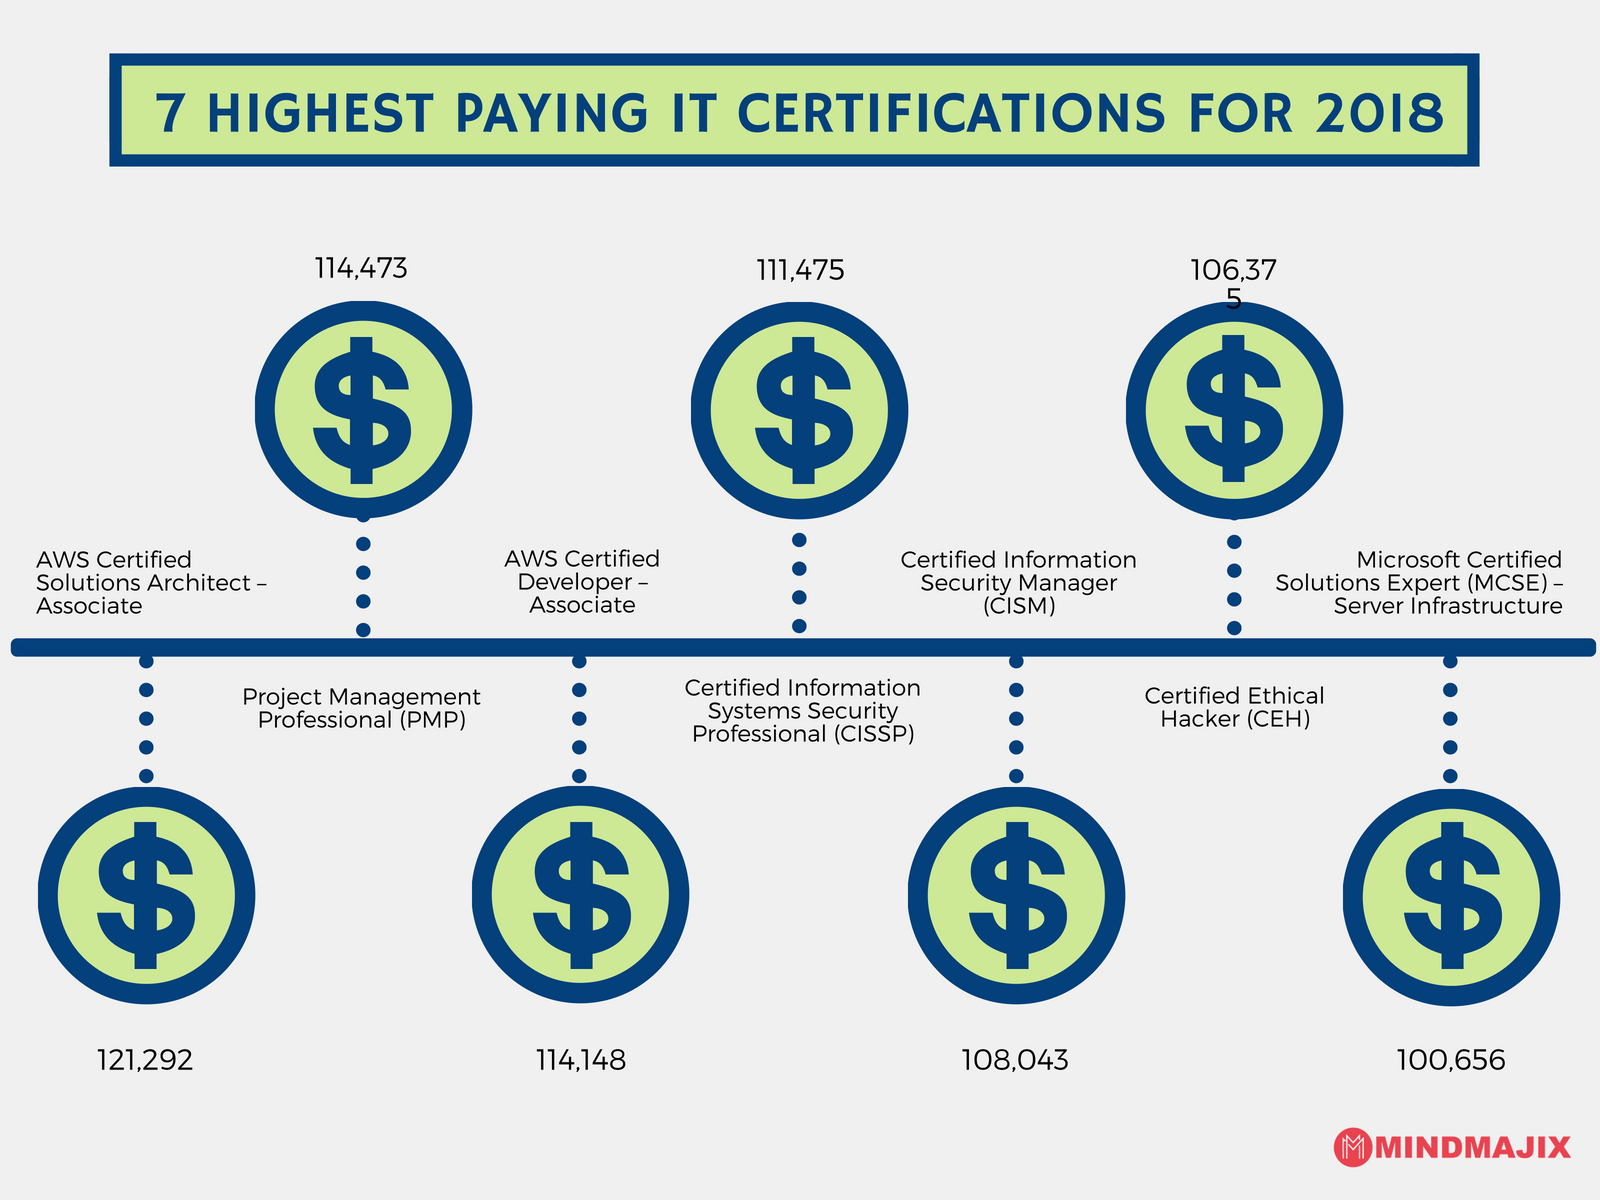 7 Highest Paying IT Certifications for 2018